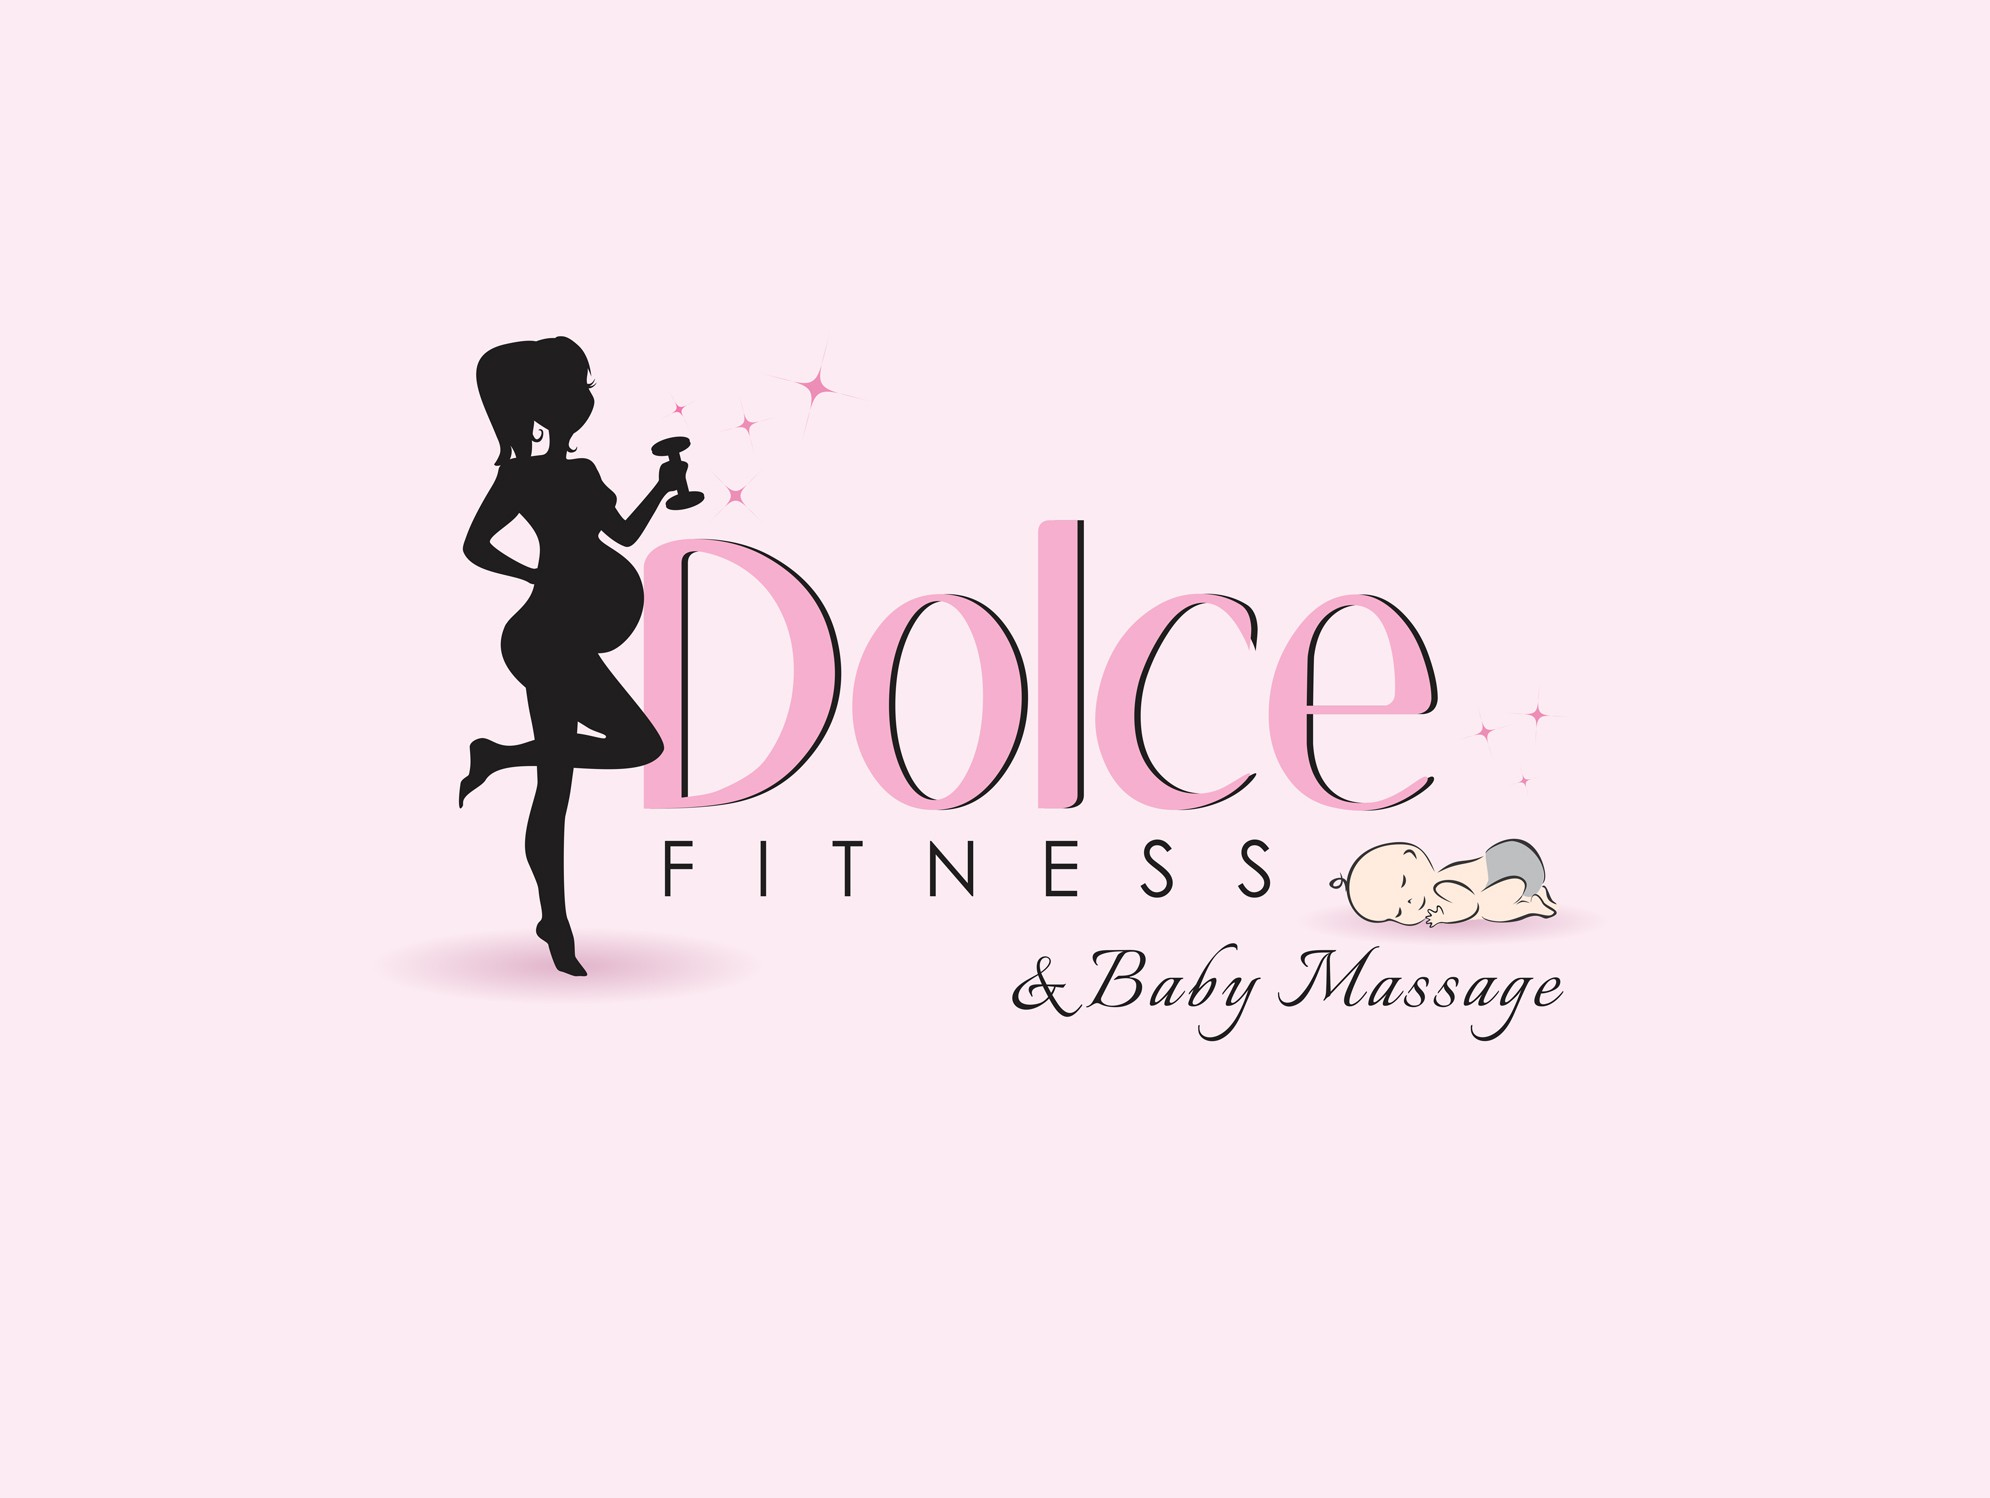 Stylish logo inviting mums to the world of fitness, child fitness & to the magic of baby massage!